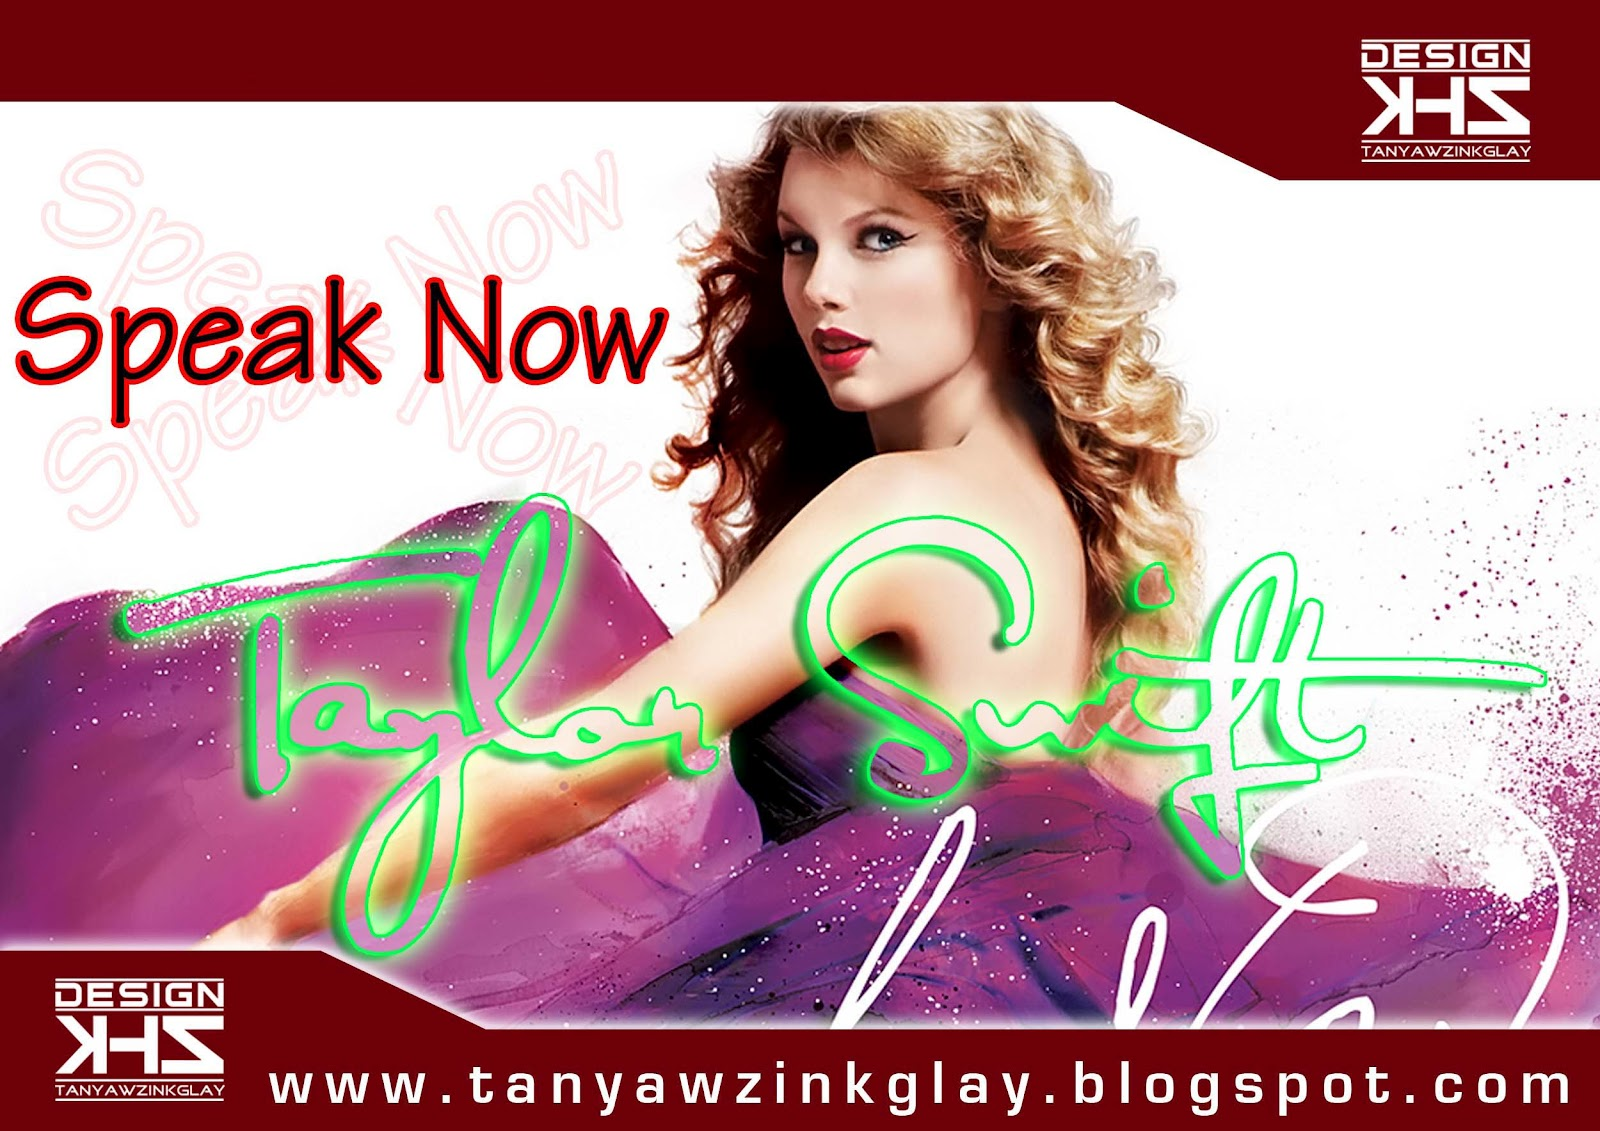 http://3.bp.blogspot.com/-bUHiMfkiEoM/UECGbM1cMjI/AAAAAAAAHIc/1OuiRoraz3A/s1600/Taylor+Swift+Speak+Now.jpg